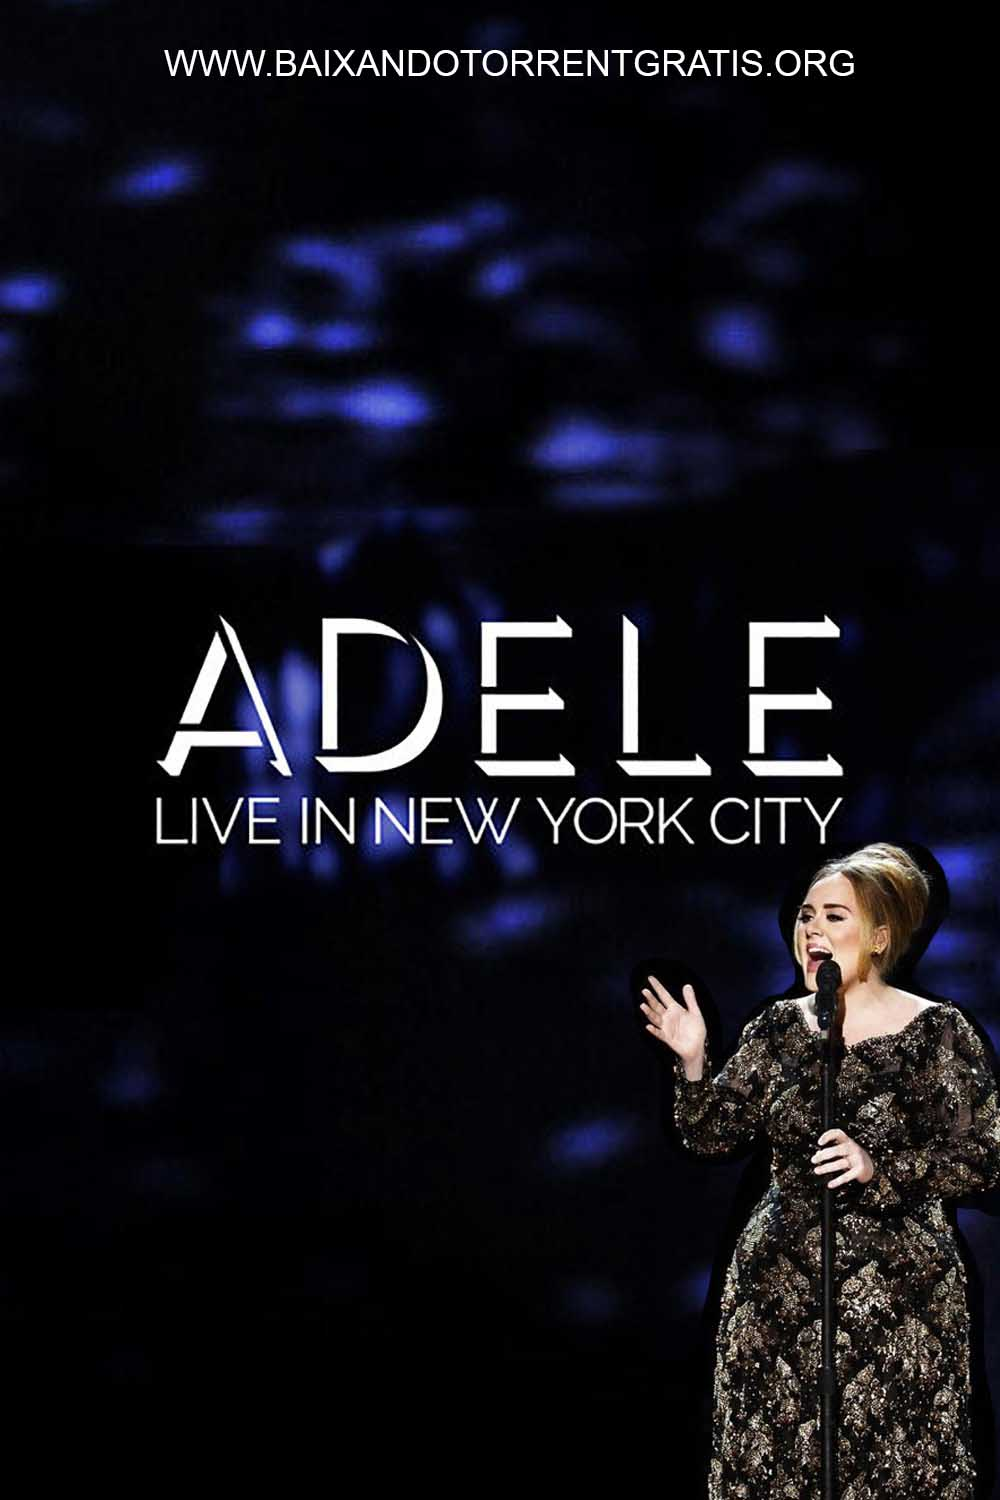 Adele Live in New York City Torrent – WEB-DL 720p (2015)